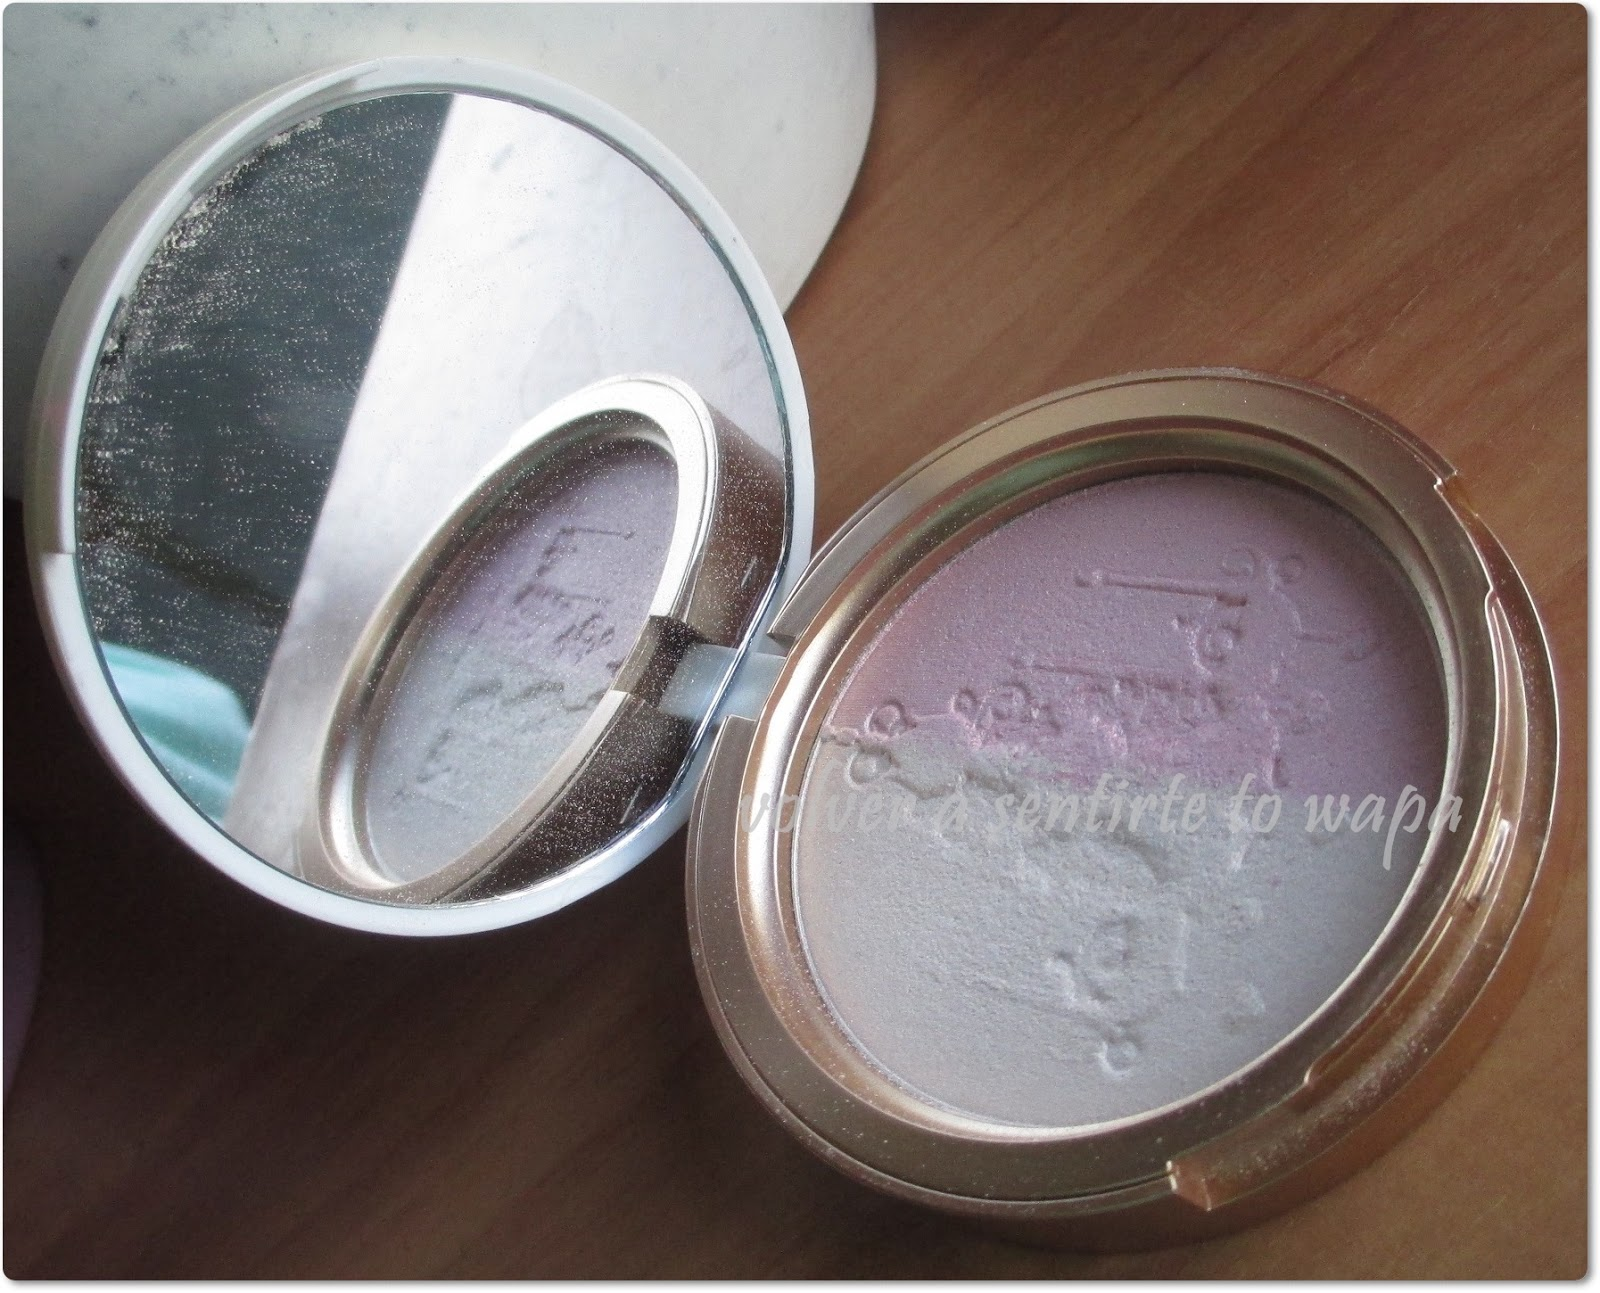 Iluminador Candlelight Glow de TOO FACED